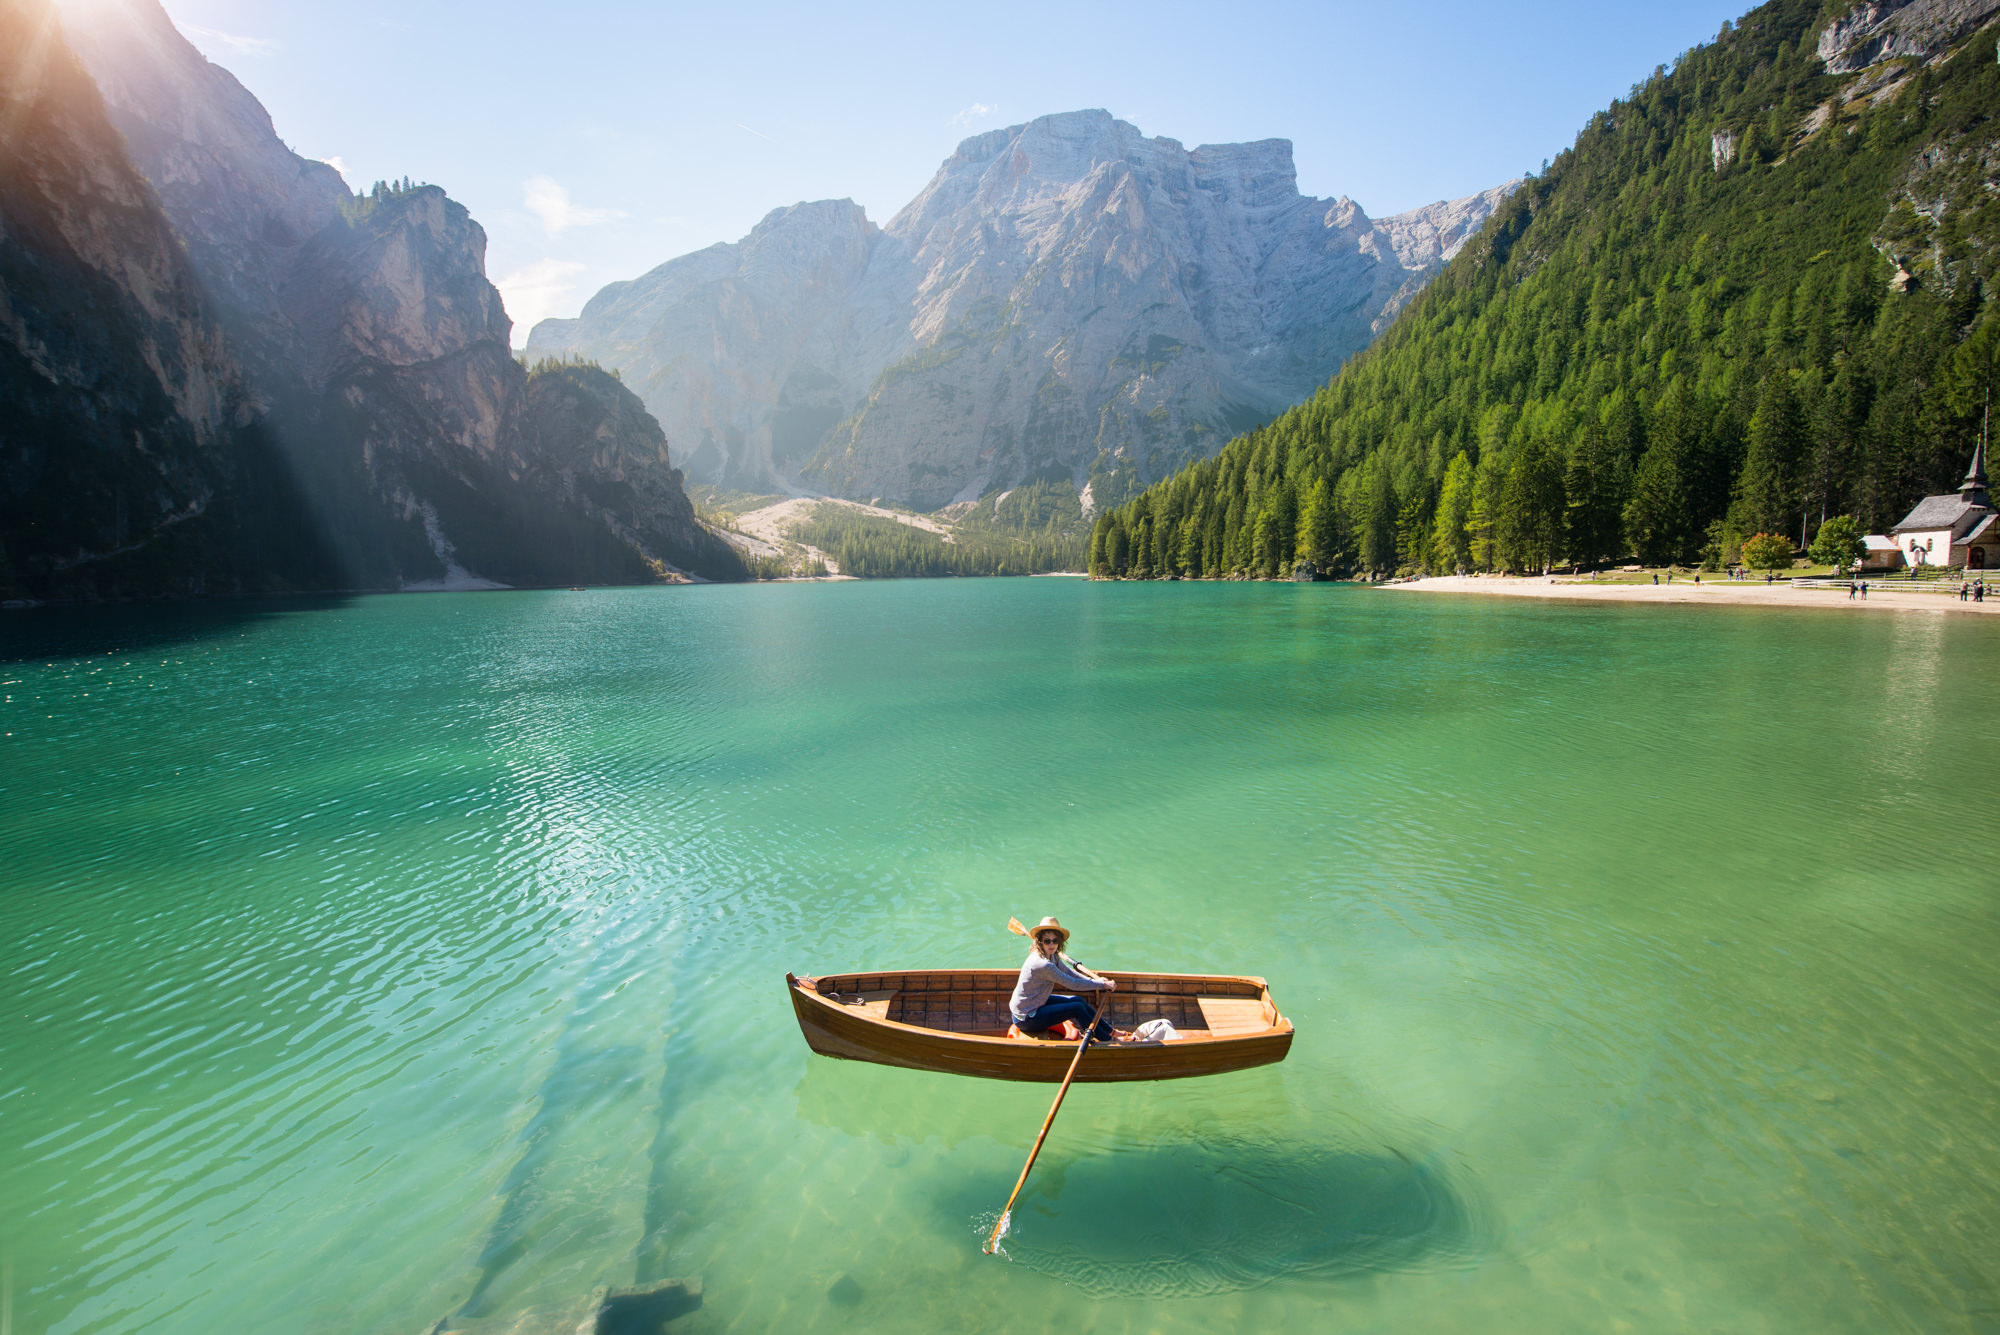 The most photographic spots in The Dolomites, Italy ...